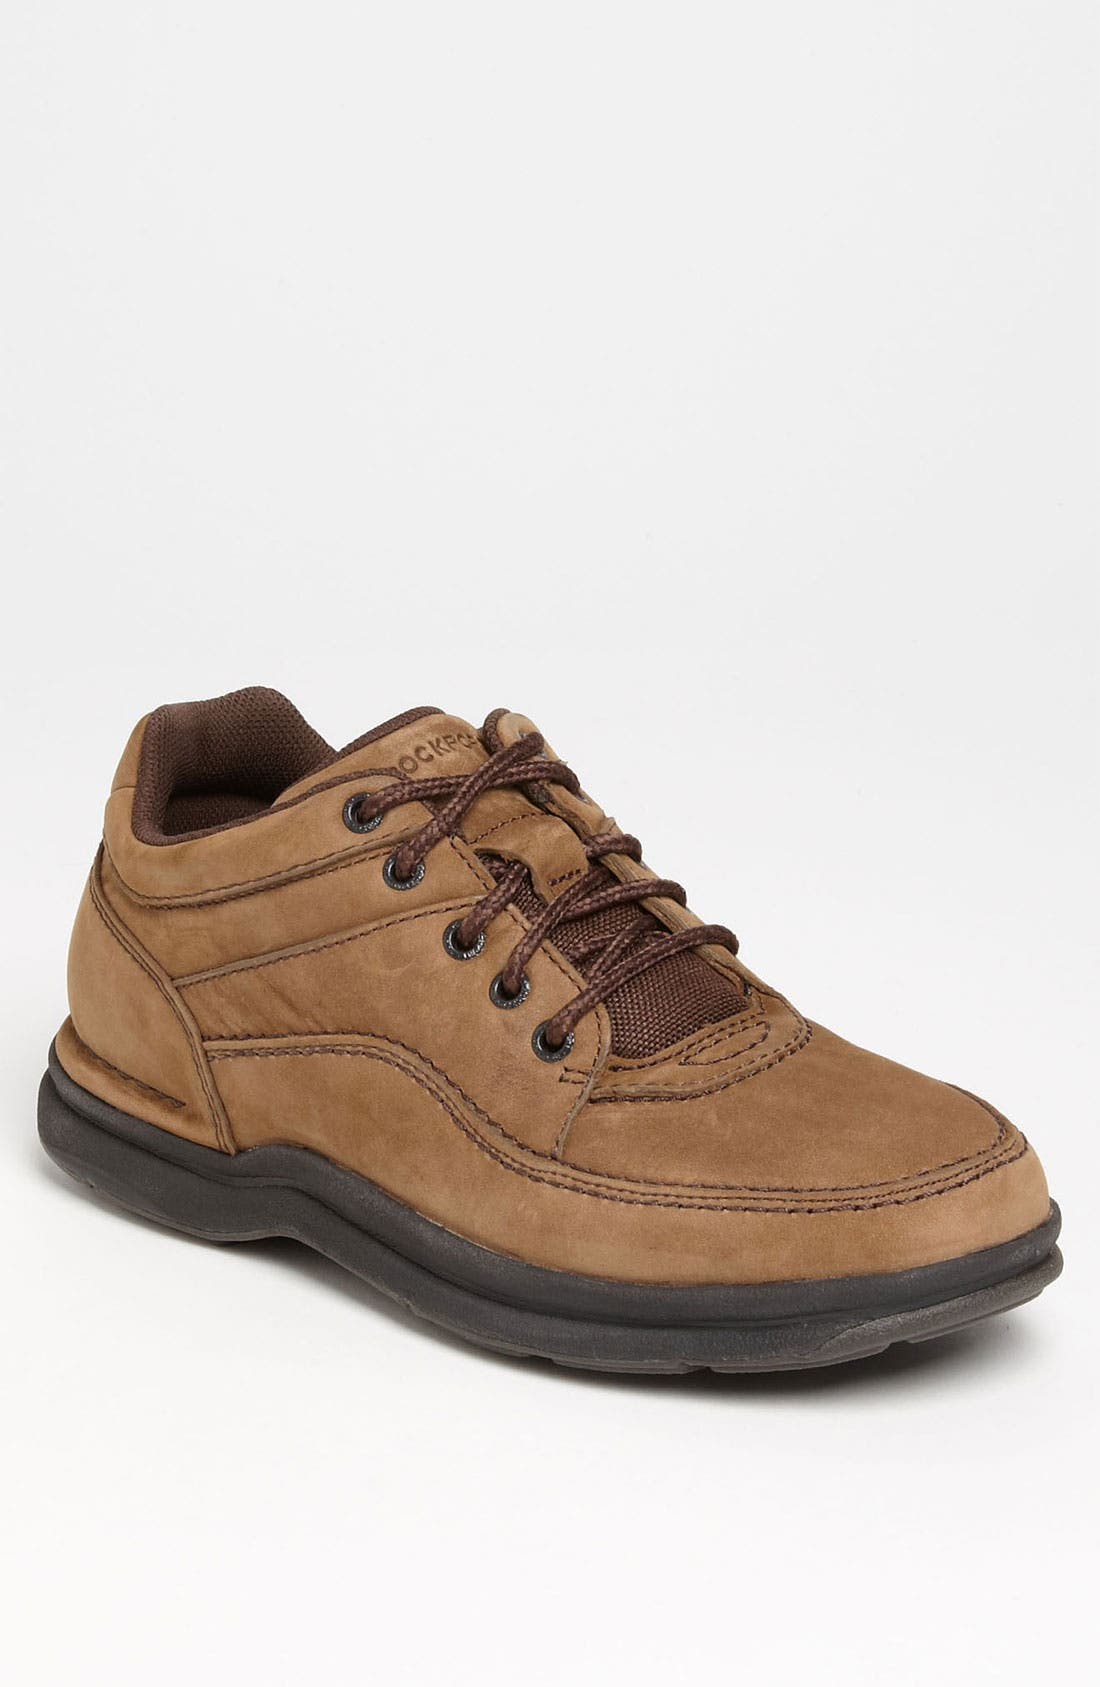 9aa5a90361f Rockport Shoes for Men